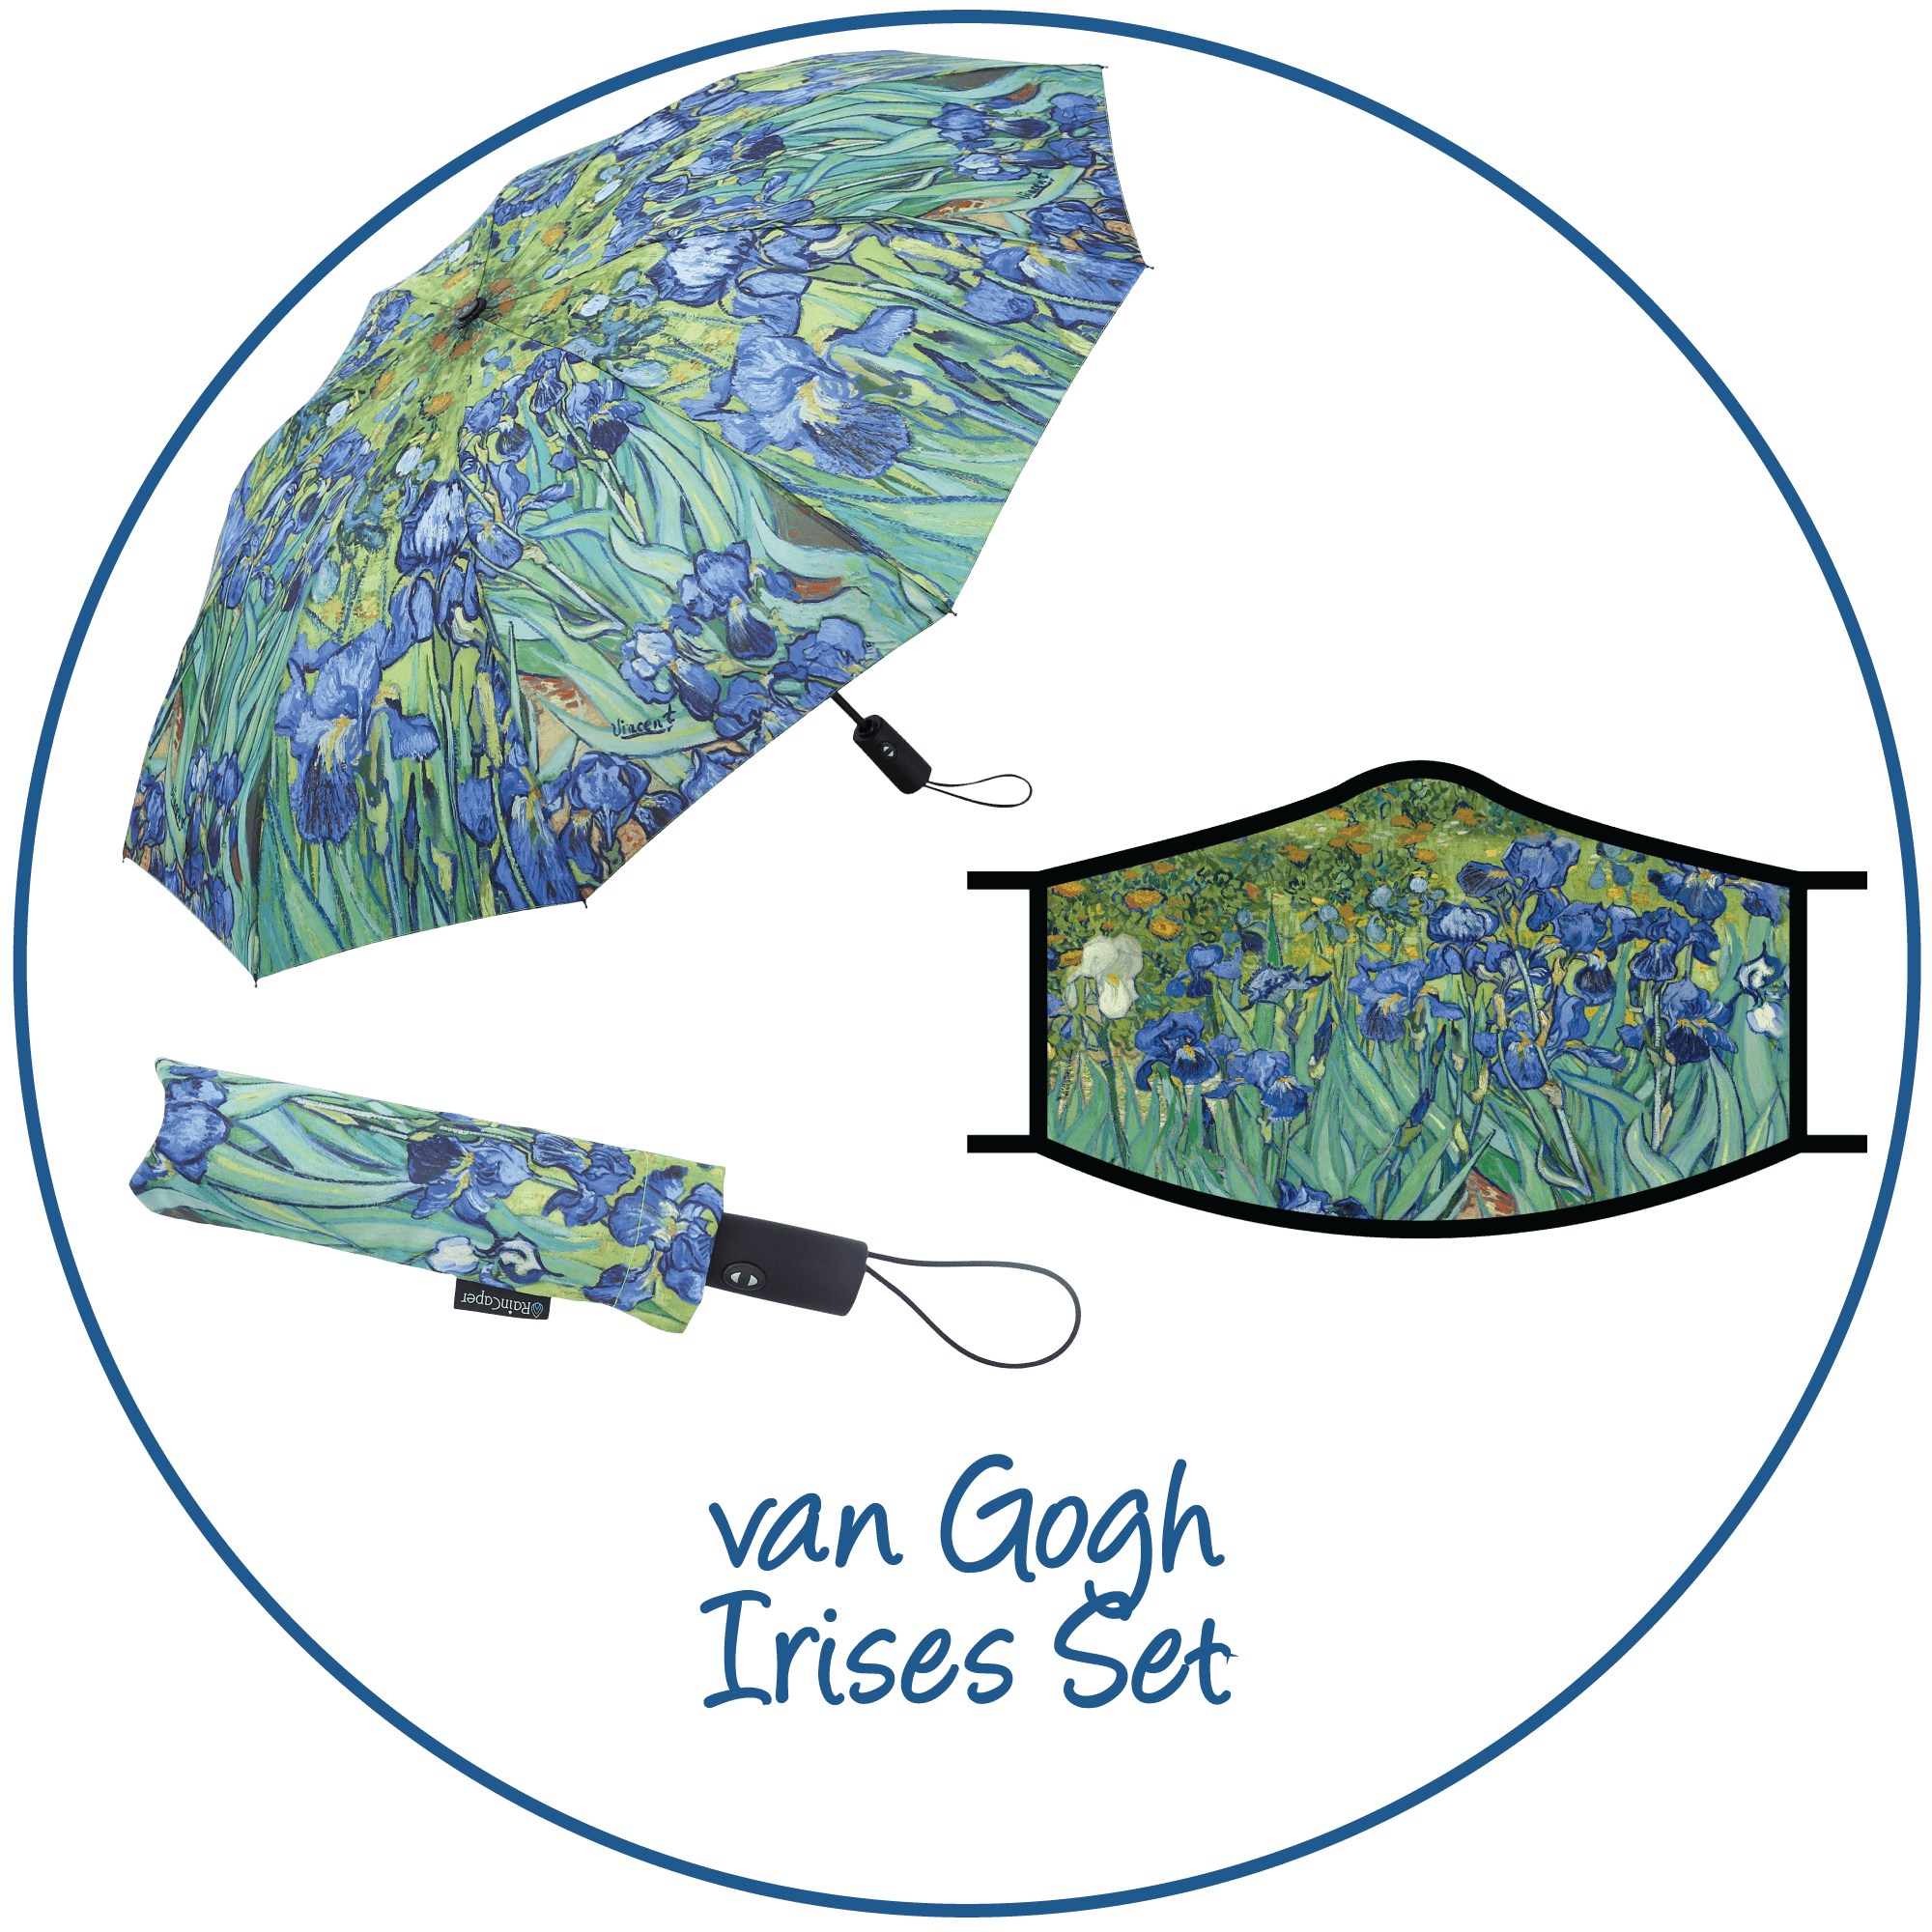 van Gogh Irises print folding travel umbrella with sleeve,  paired with a matching van Gogh Irises print reusable cloth face mask